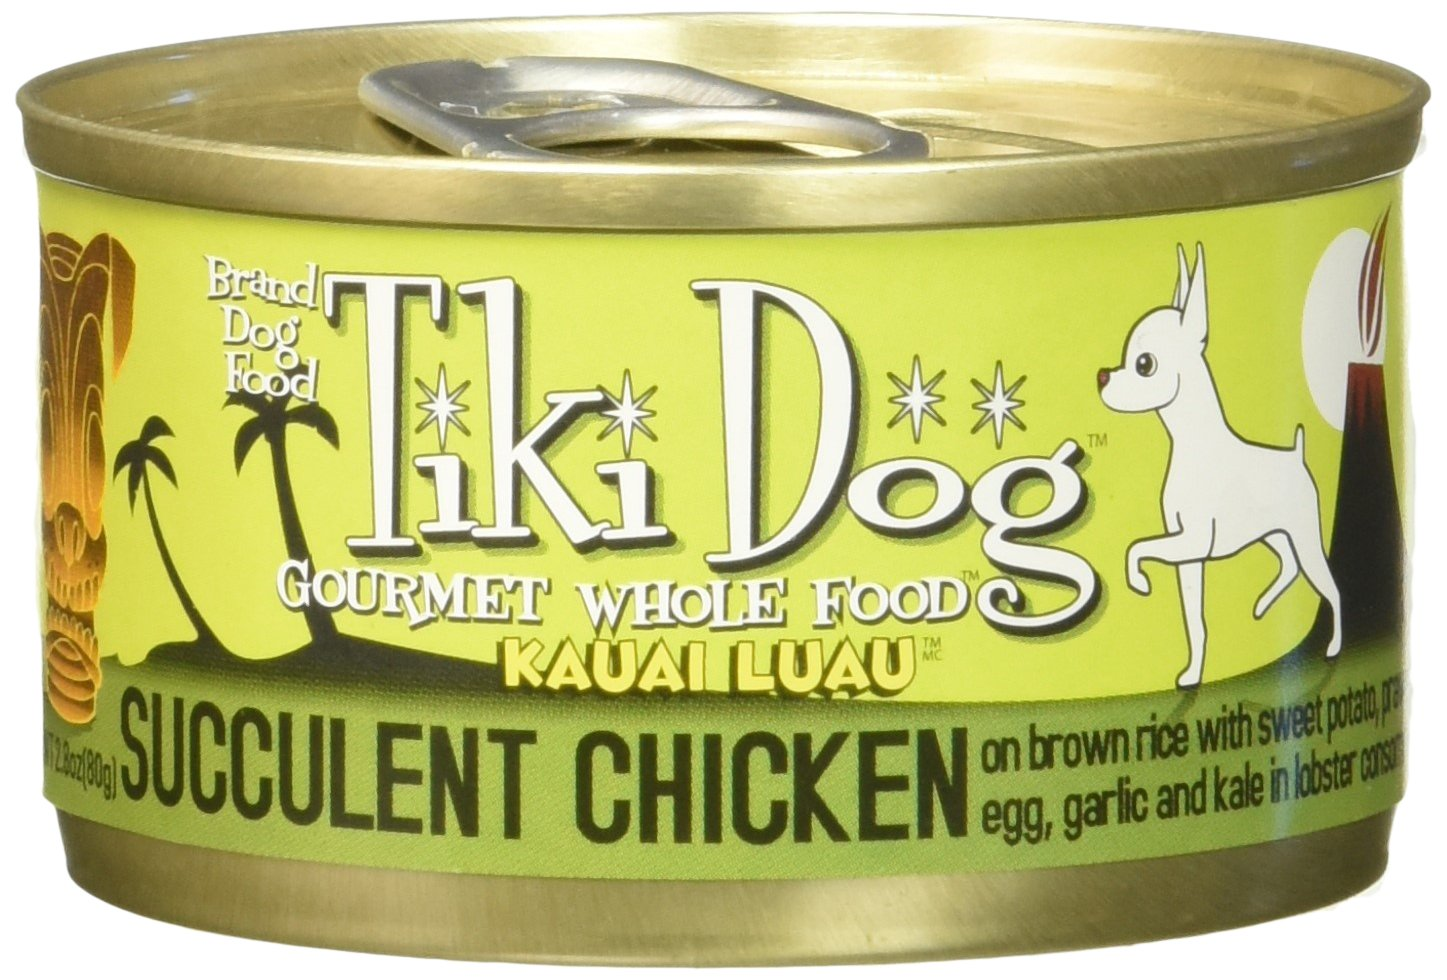 Tiki Dog Gourmet Whole Foods with Real Shredded Meat and Seafood with Kale & Brown Rice